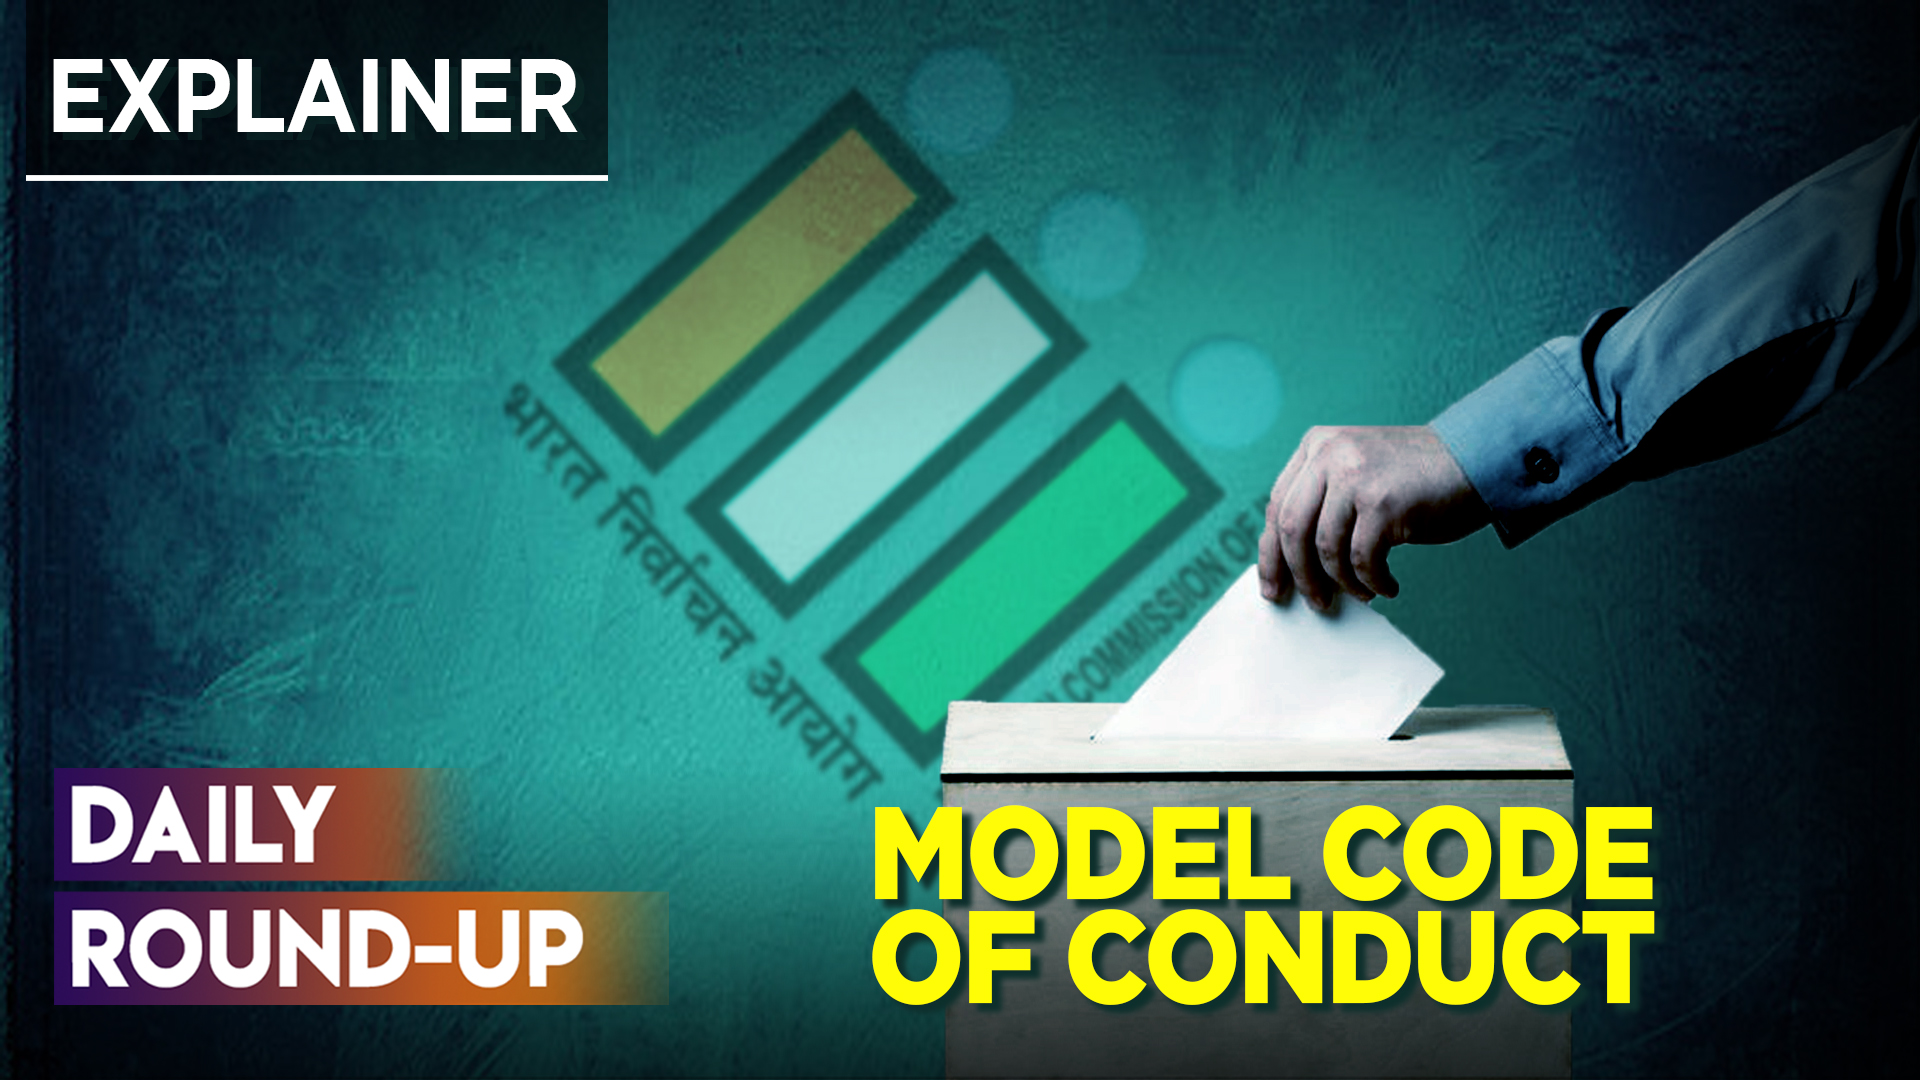 Daily Round-up Ep 69: Model Code of Conduct Explainer